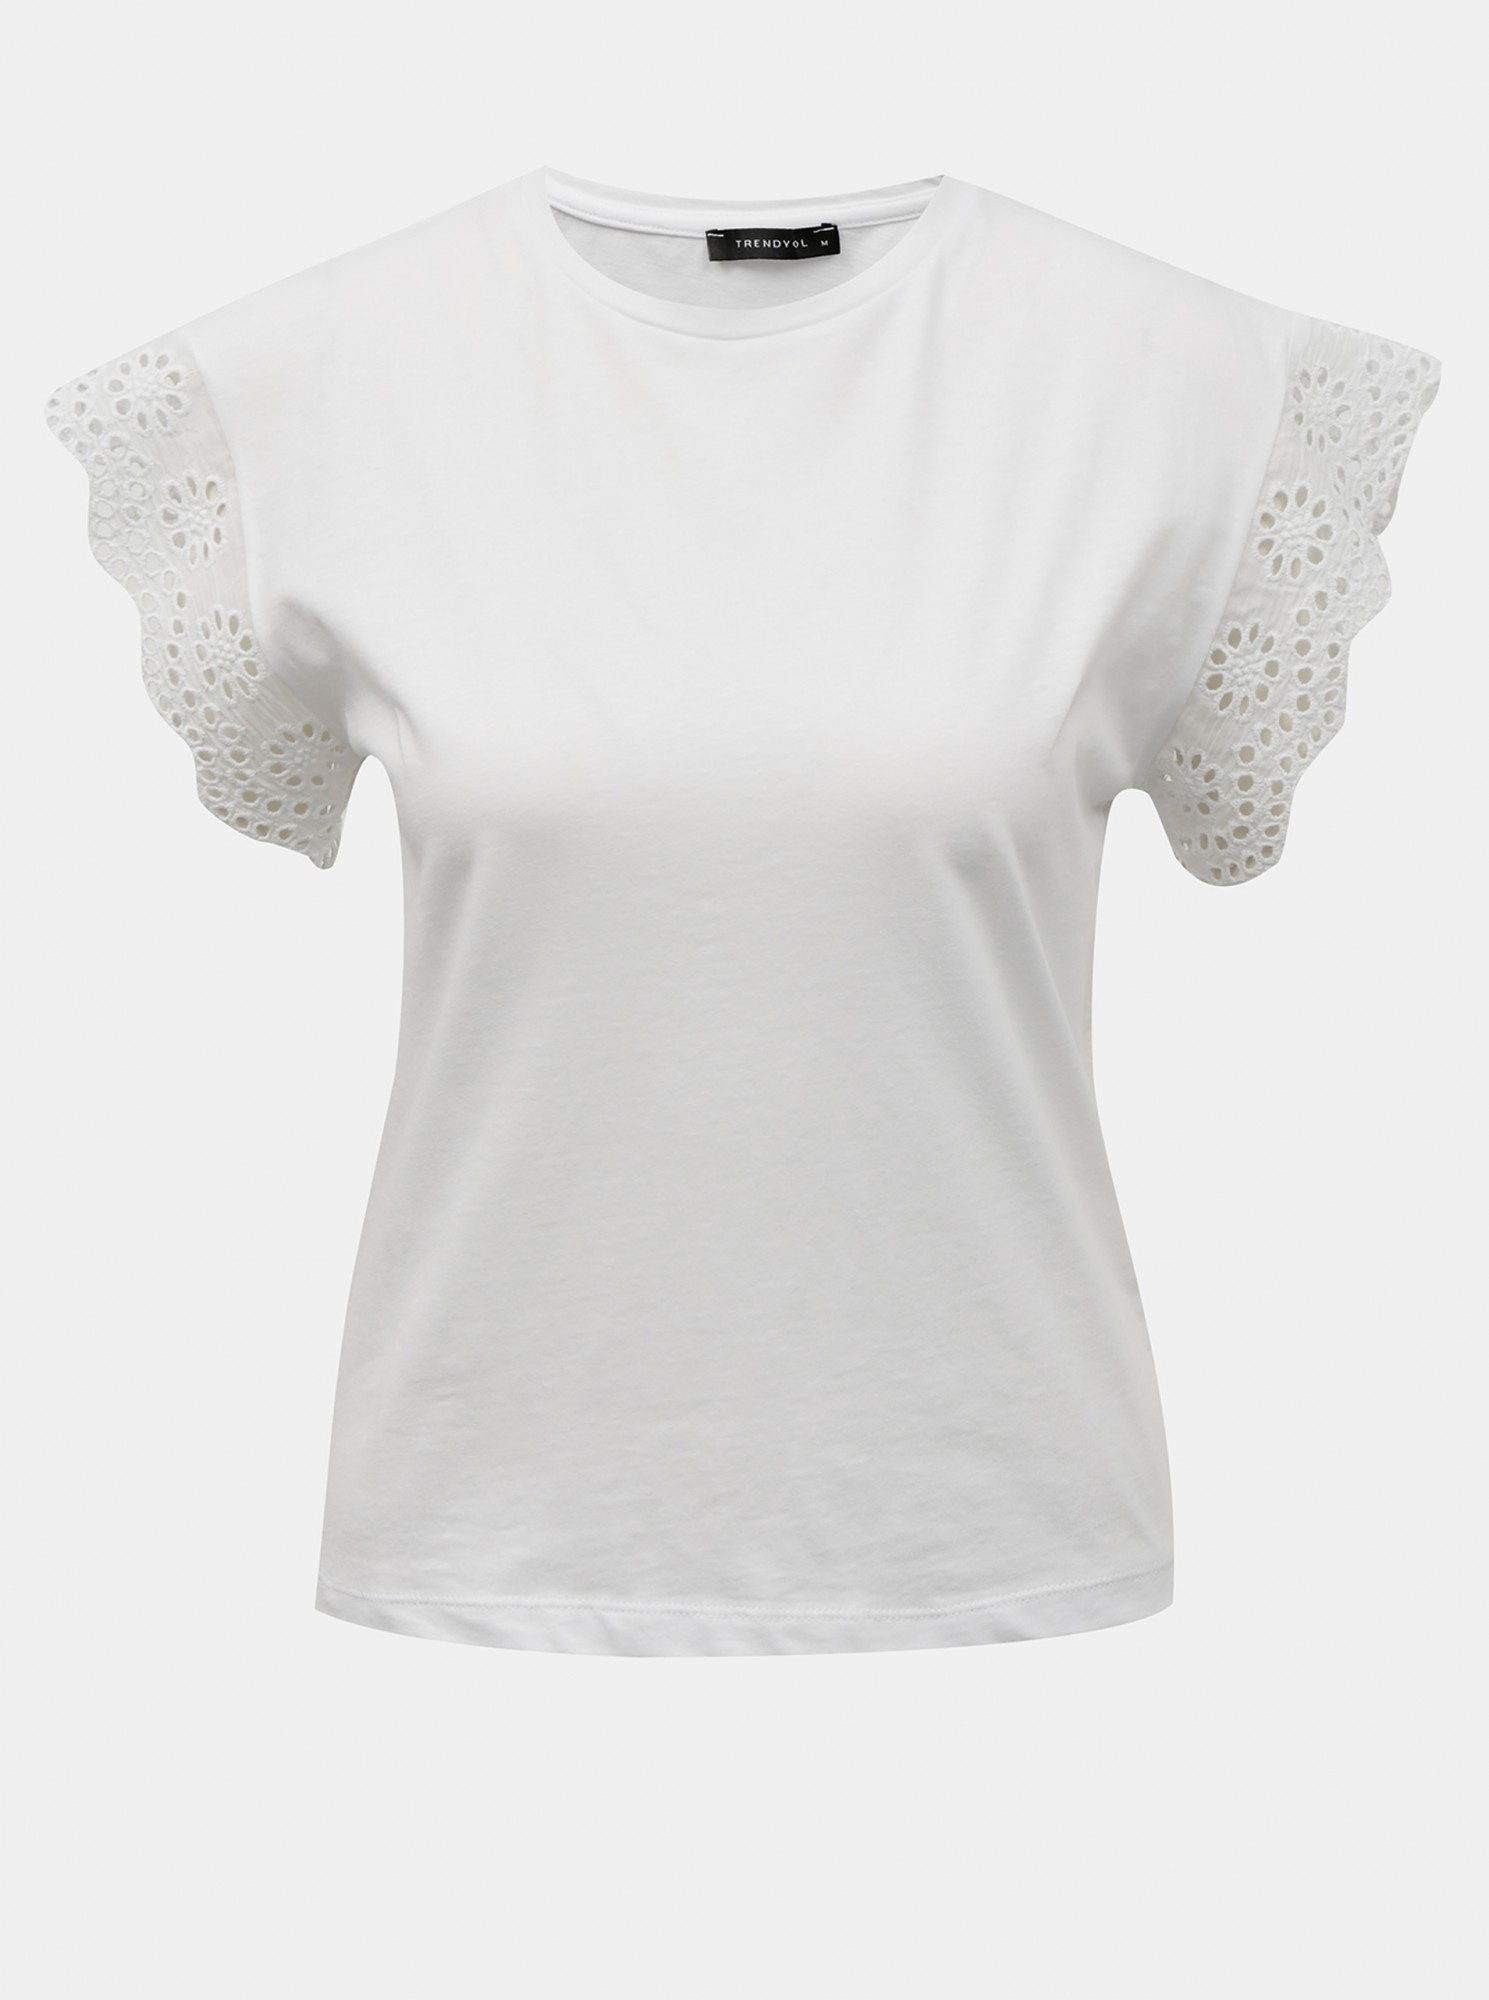 Trendyol white blouse with wood